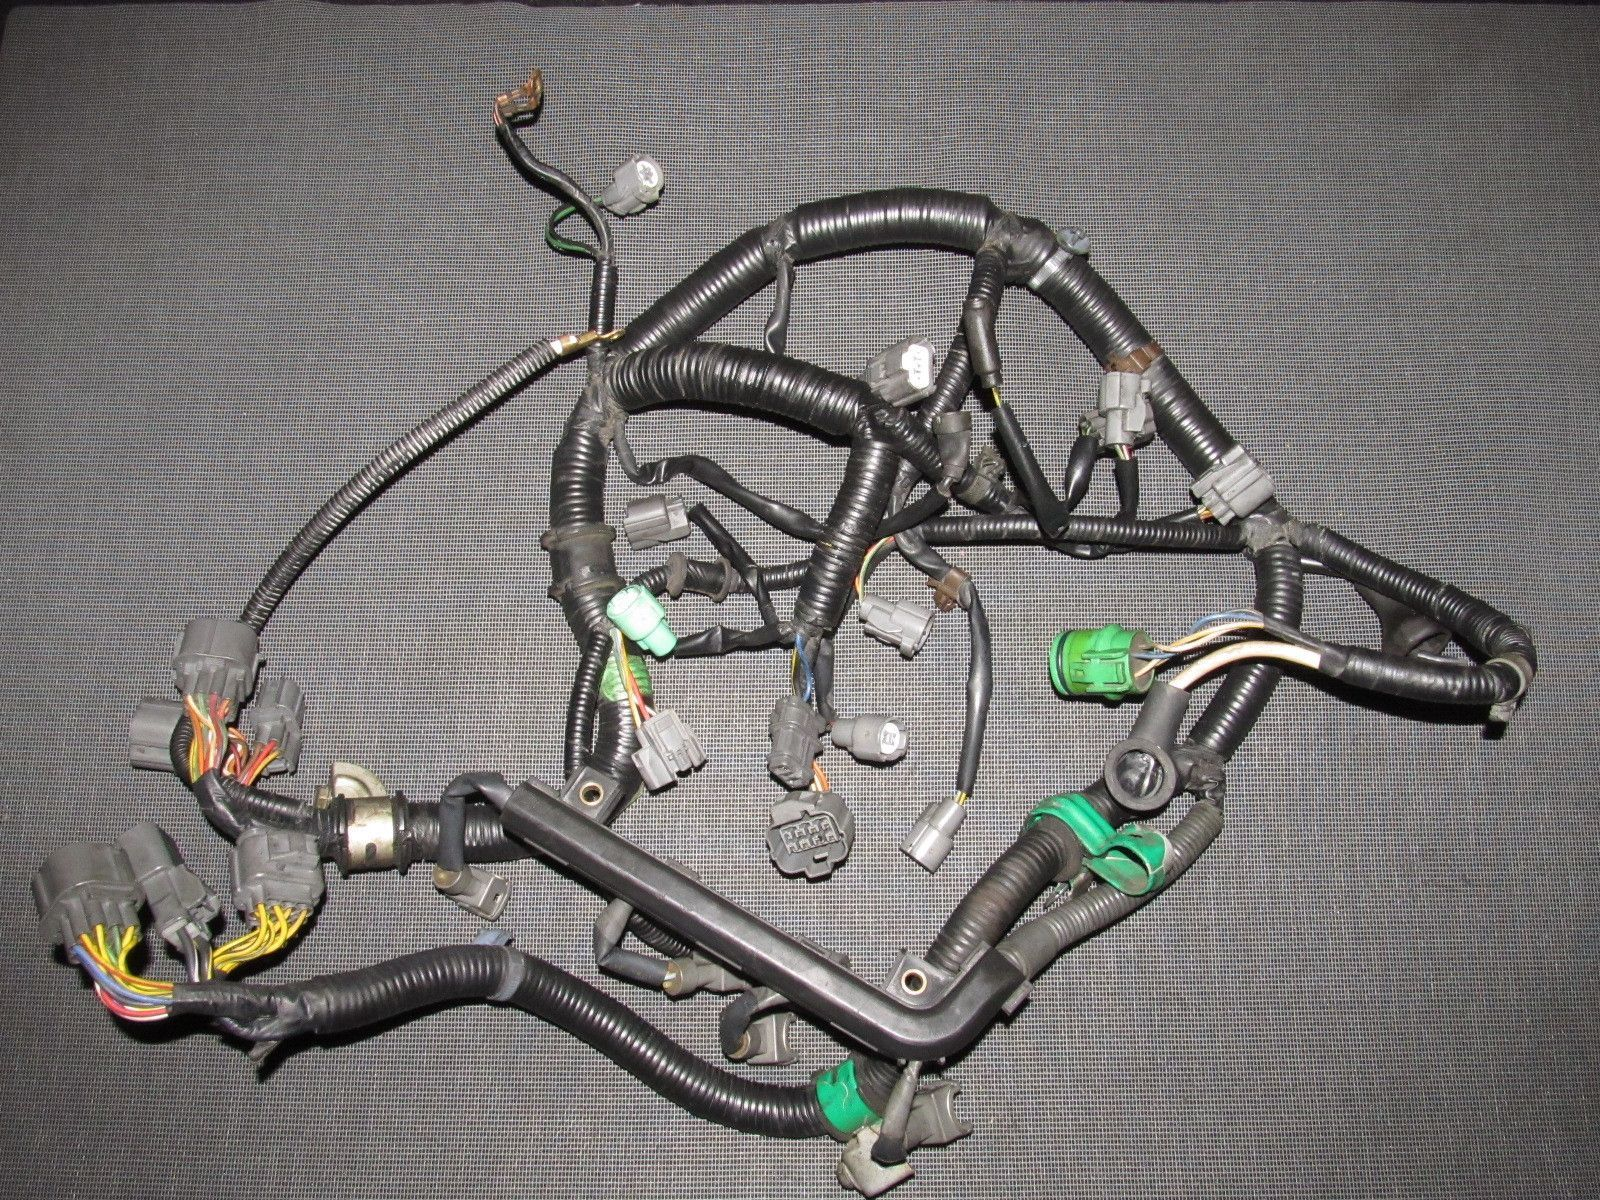 D16z6 Wiring Harness Diagram International Scout Ii 93 94 95 Honda Del Sol Auto Transmission Engine